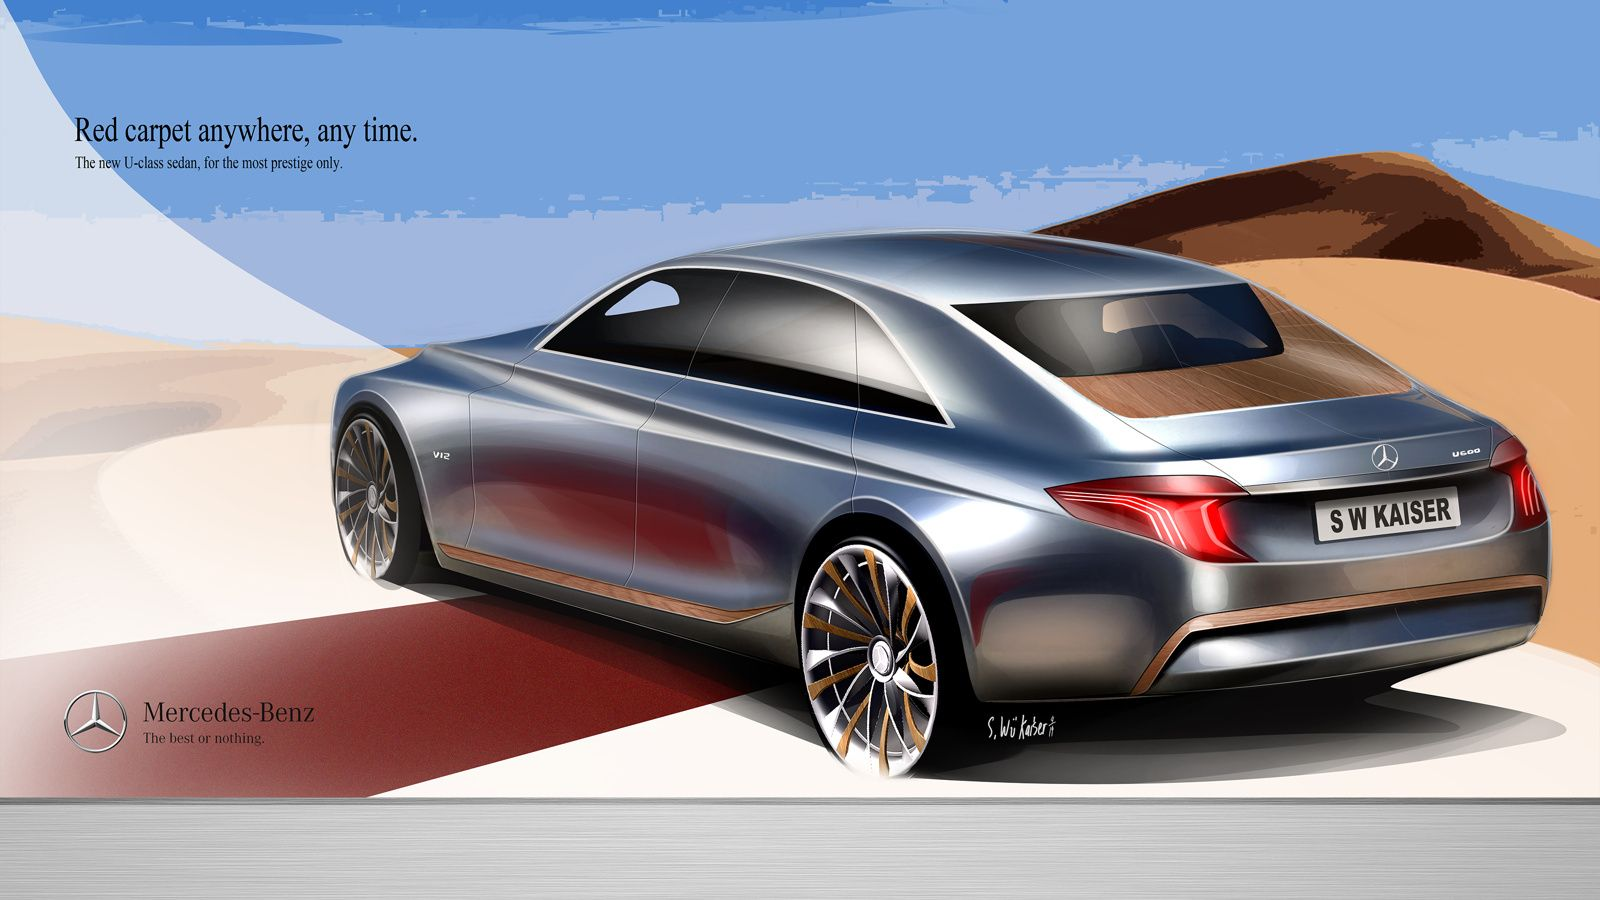 2021 mercedes benz u class concept for an uber saloon placed above the